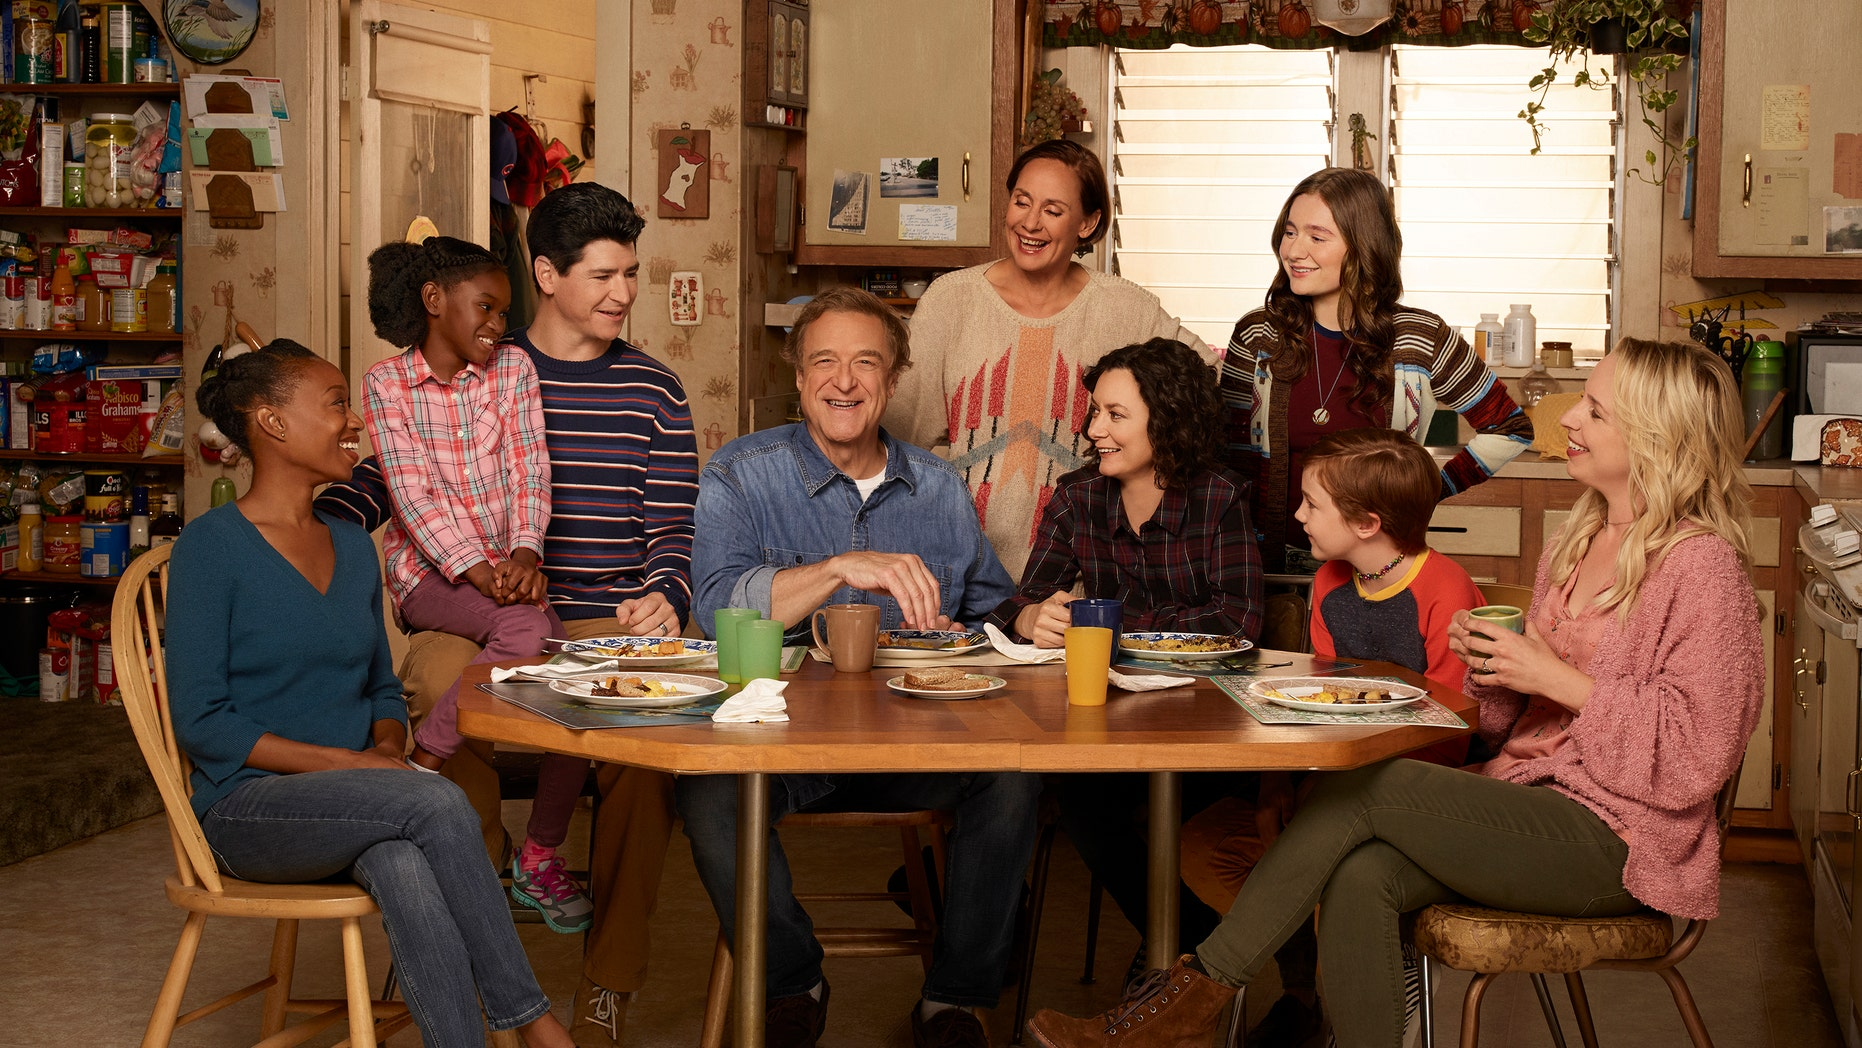 """""""The Conners"""" stars Maya Lynne Robinson as Geena Williams-Conner, Jayden Rey as Mary, Michael Fishman as D.J. Conner, John Goodman as Dan Conner, Laurie Metcalf as Jackie Harris, Sara Gilbert as Darlene Conner, Emma Kenney as Harris Conner, Ames McNamara as Mark, and Lecy Goranson as Becky Conner"""